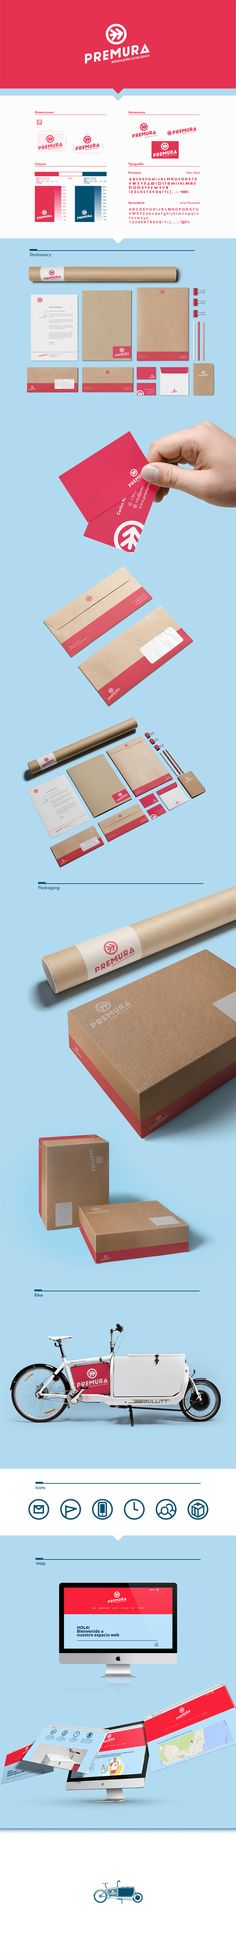 Graphic corporate design stationary business card packaging and marketing material.